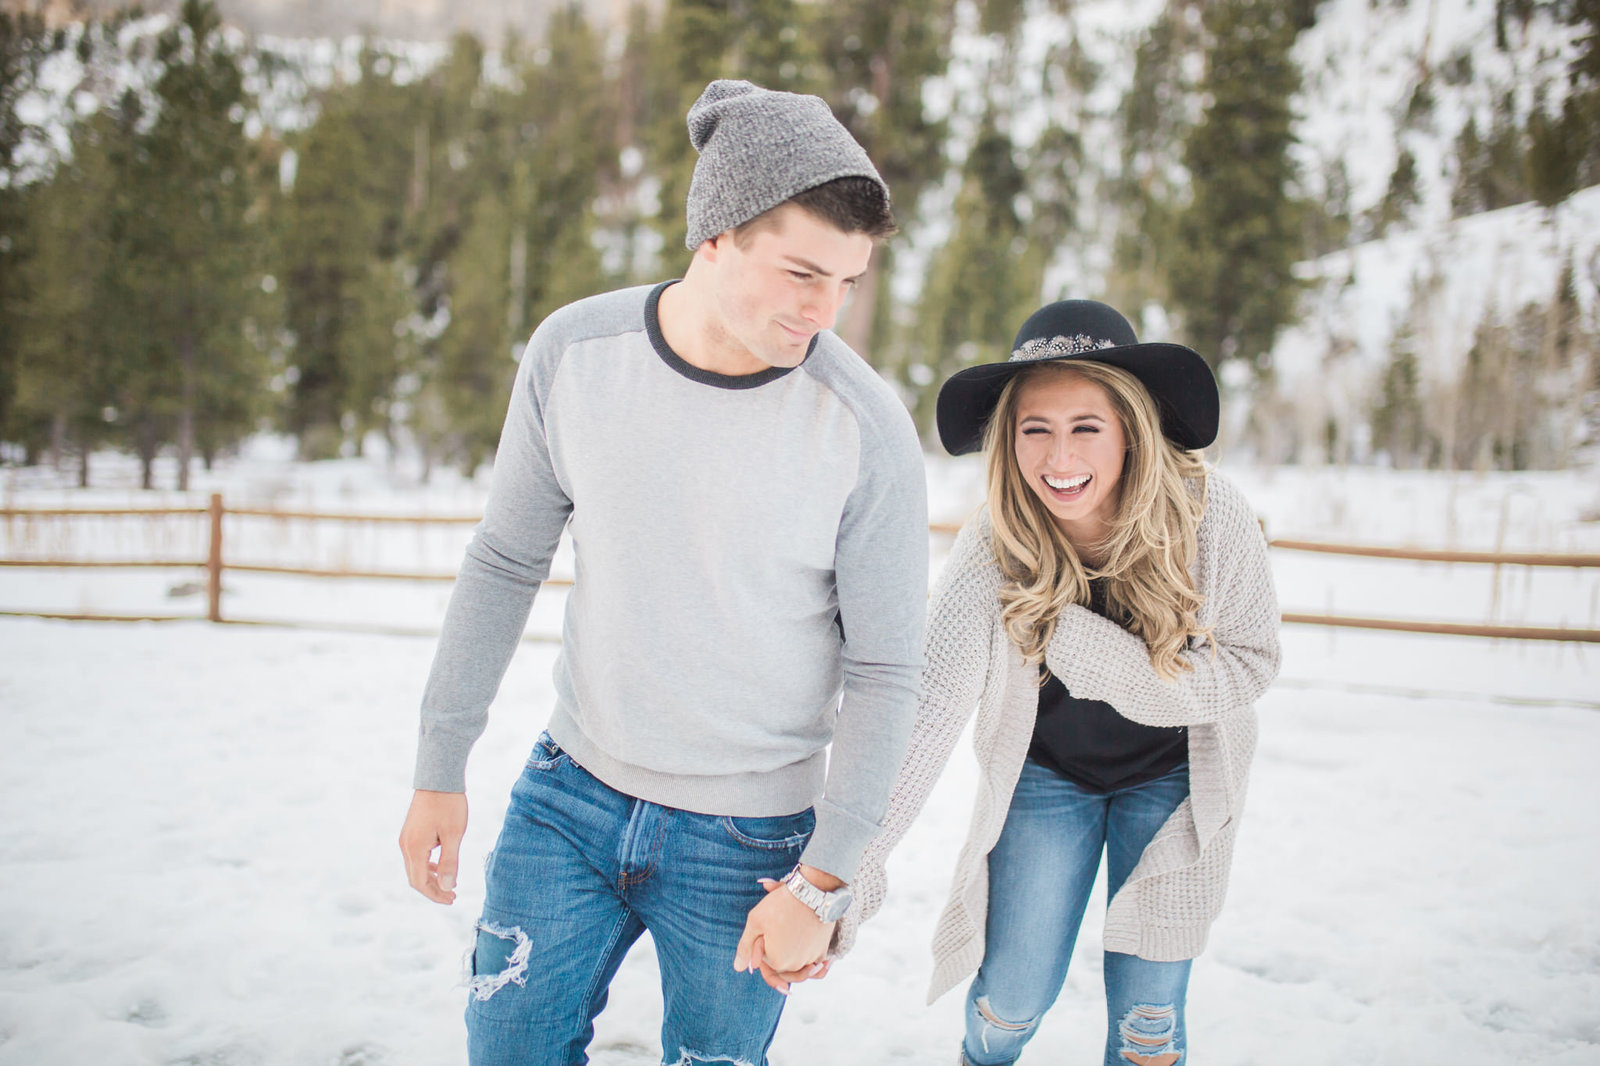 mt-charleston-las-vegas-winter-snowy-engagement-6